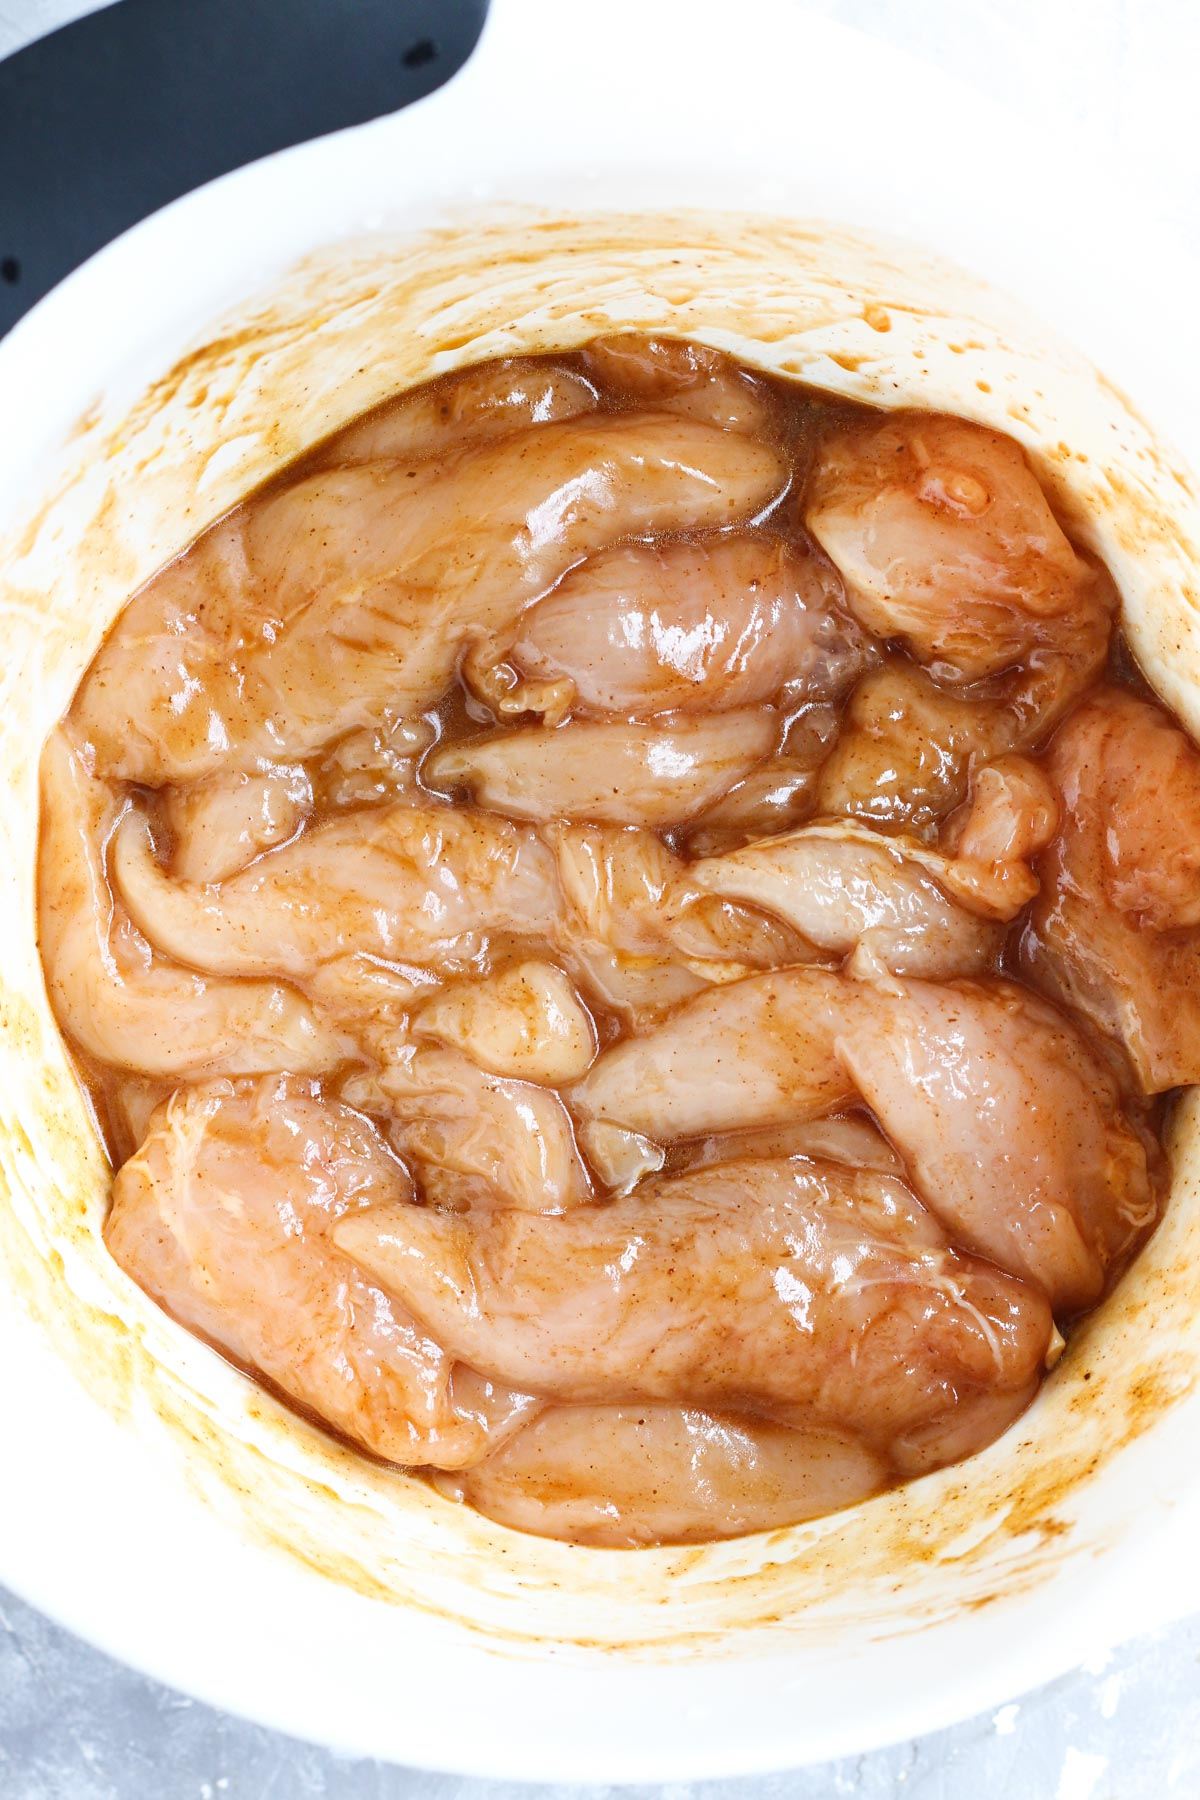 Chipotle chicken marinating in a bowl.